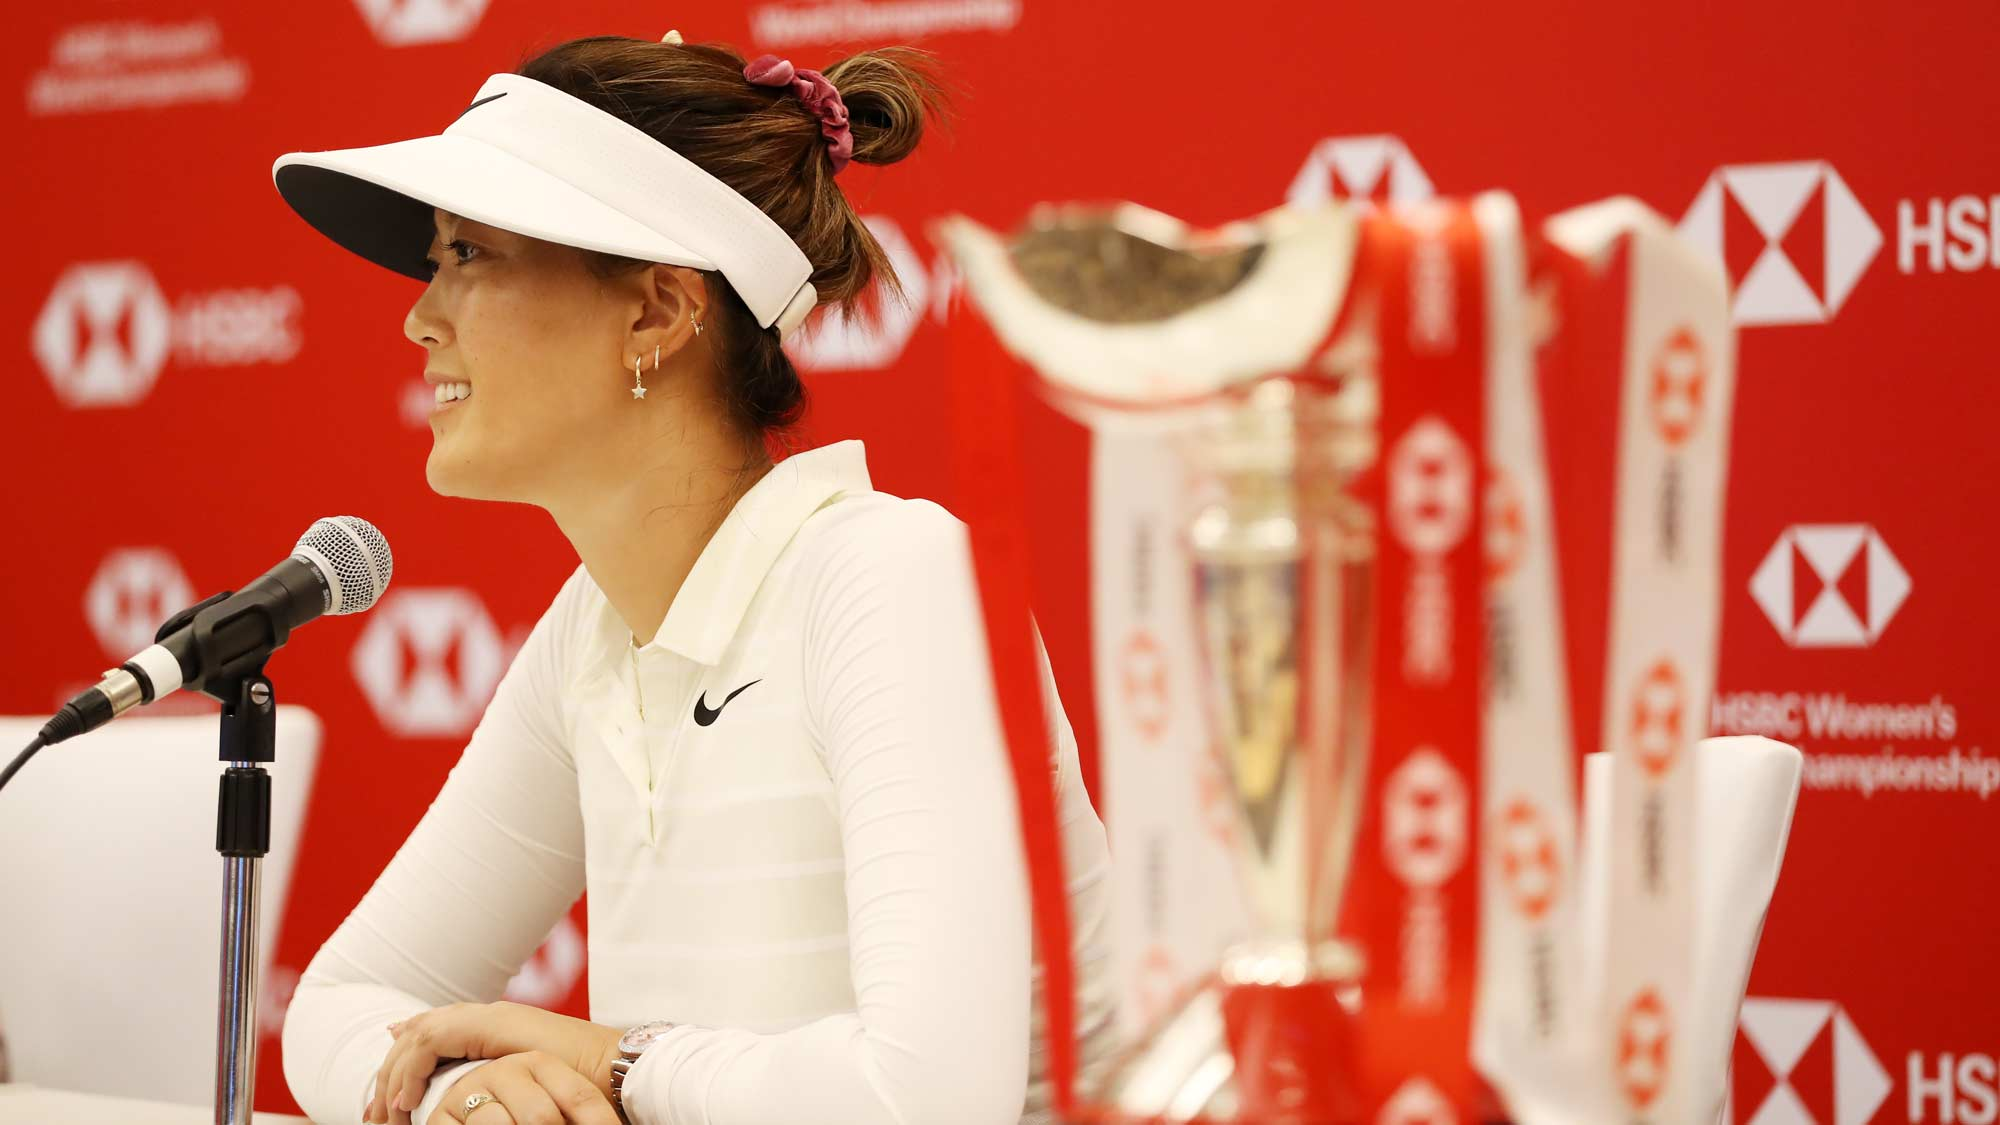 Michelle Wie of United States speaks to the media during a press conference prior to the HSBC Women's World Championship at Sentosa Golf Club on February 26, 2019 in Singapore.